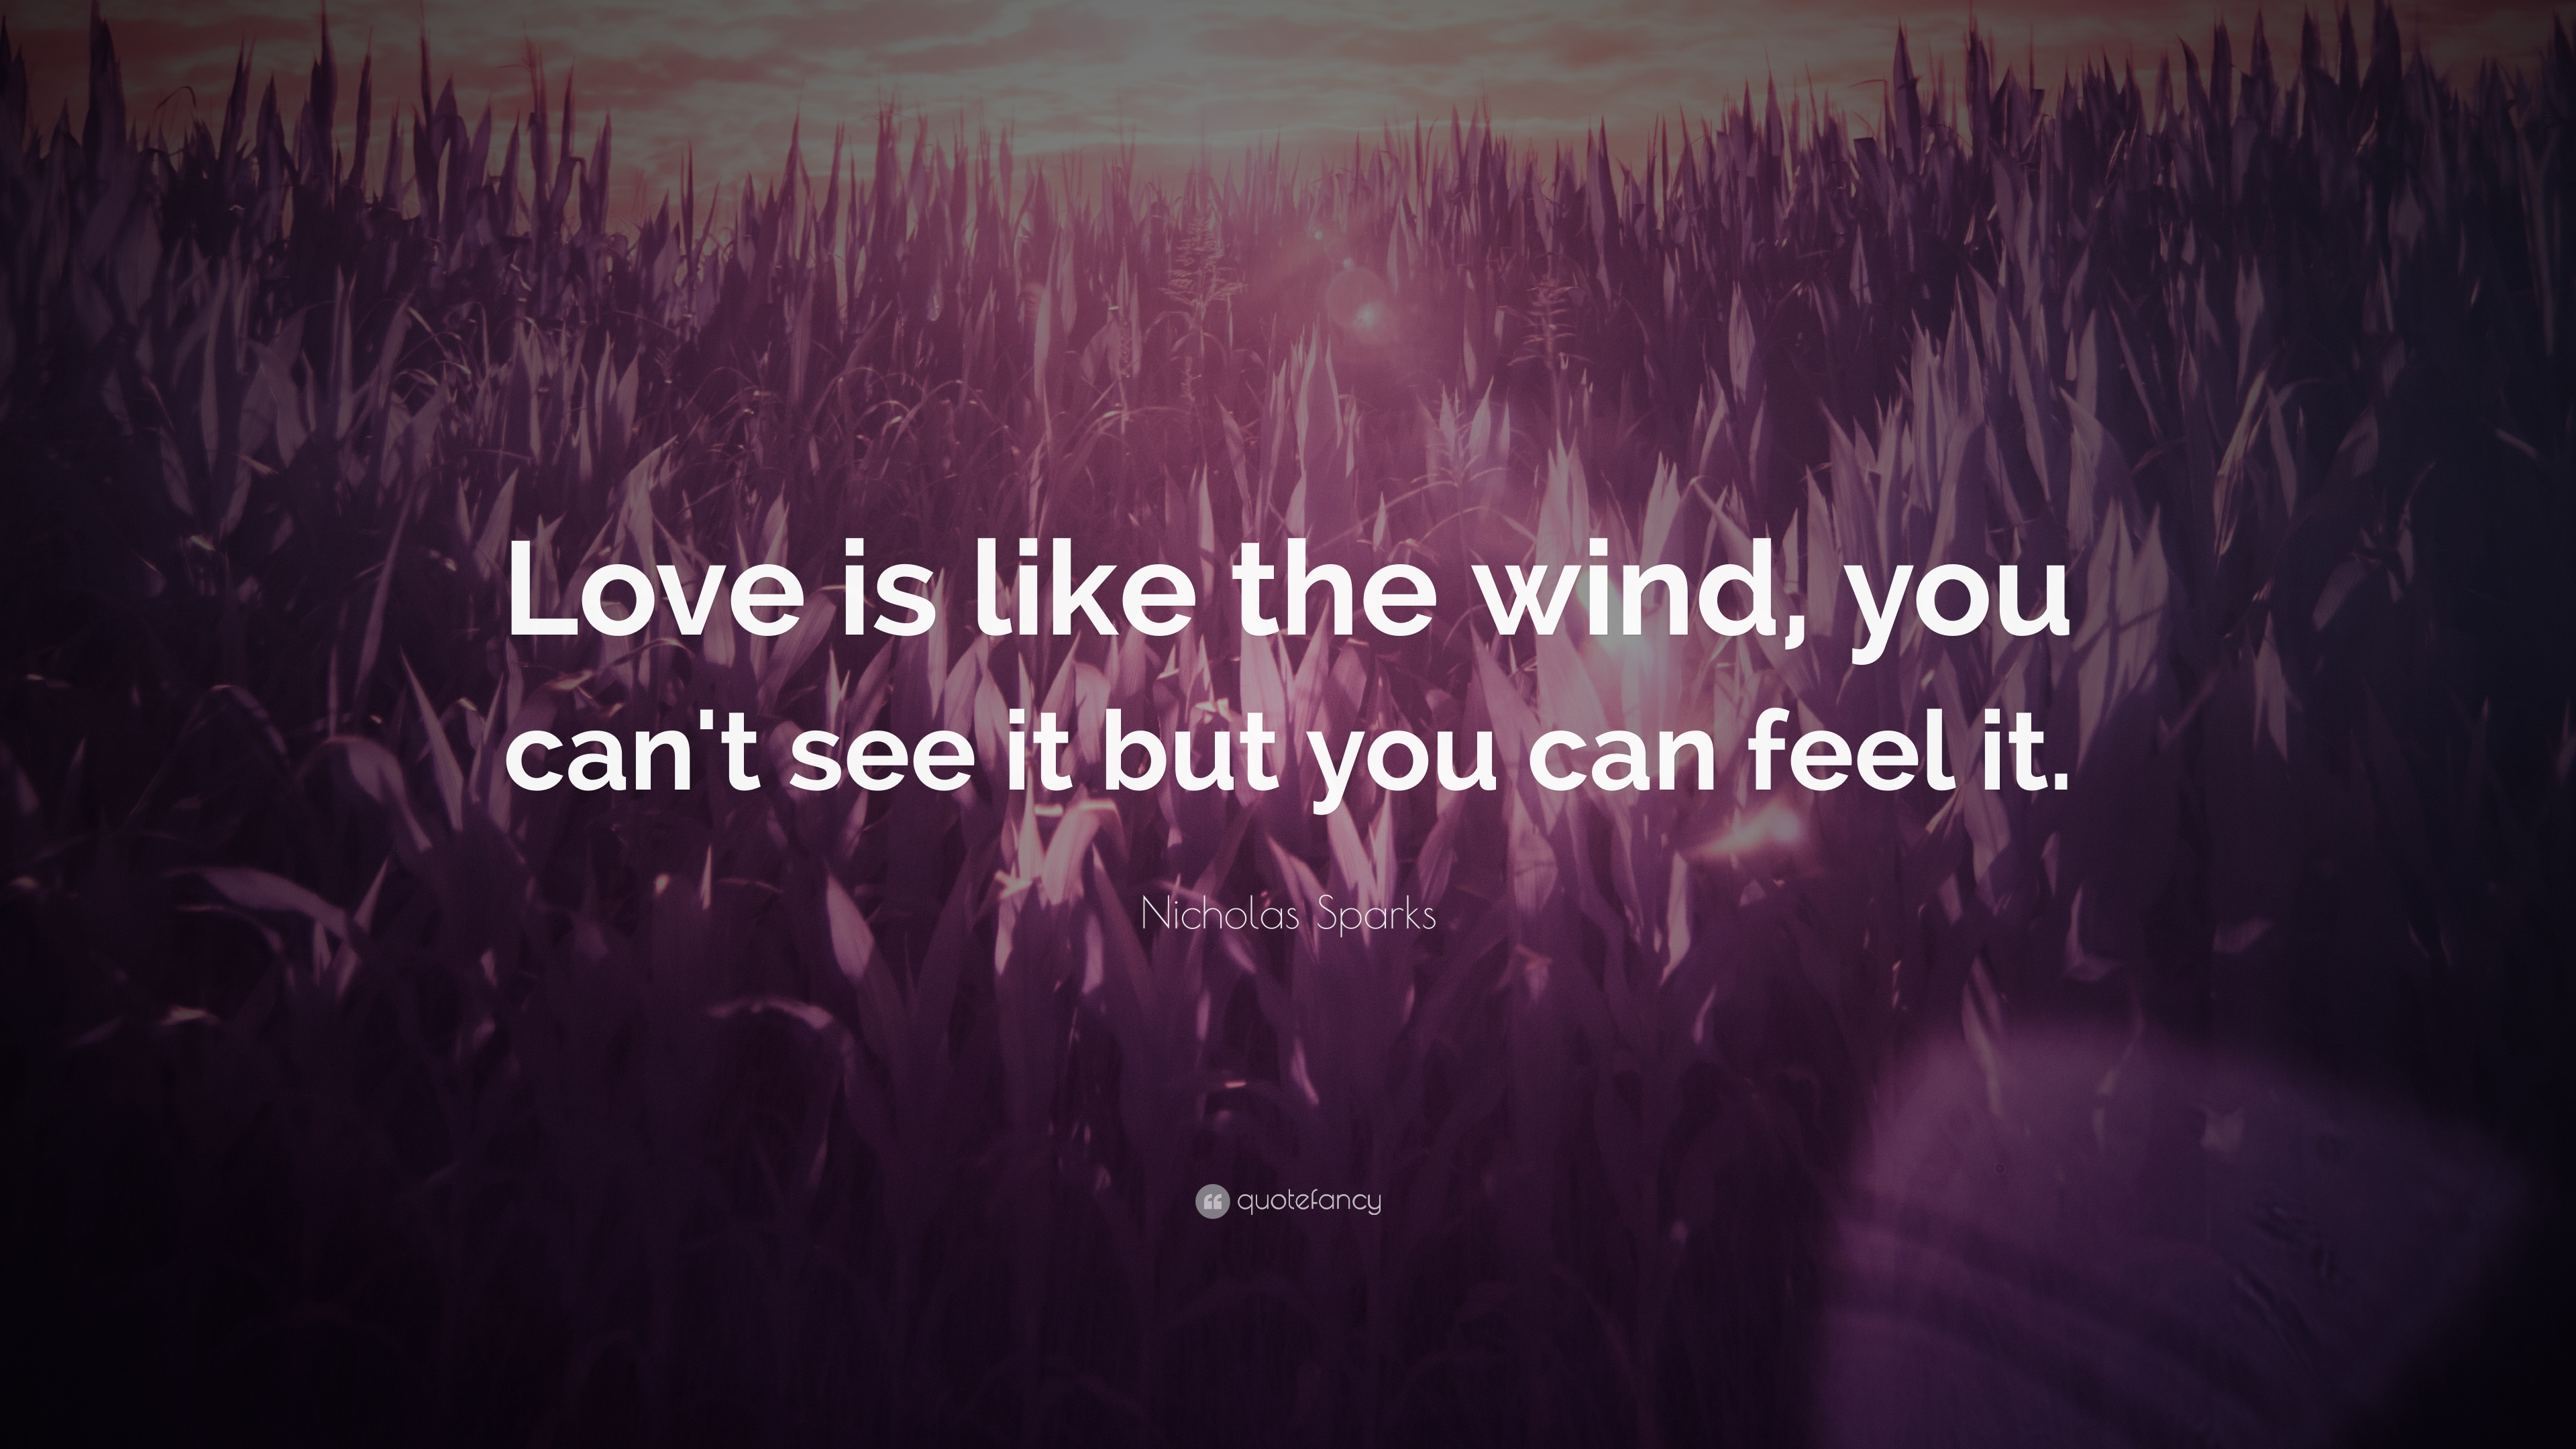 Merveilleux Love Quotes: U201cLove Is Like The Wind, You Canu0027t See It